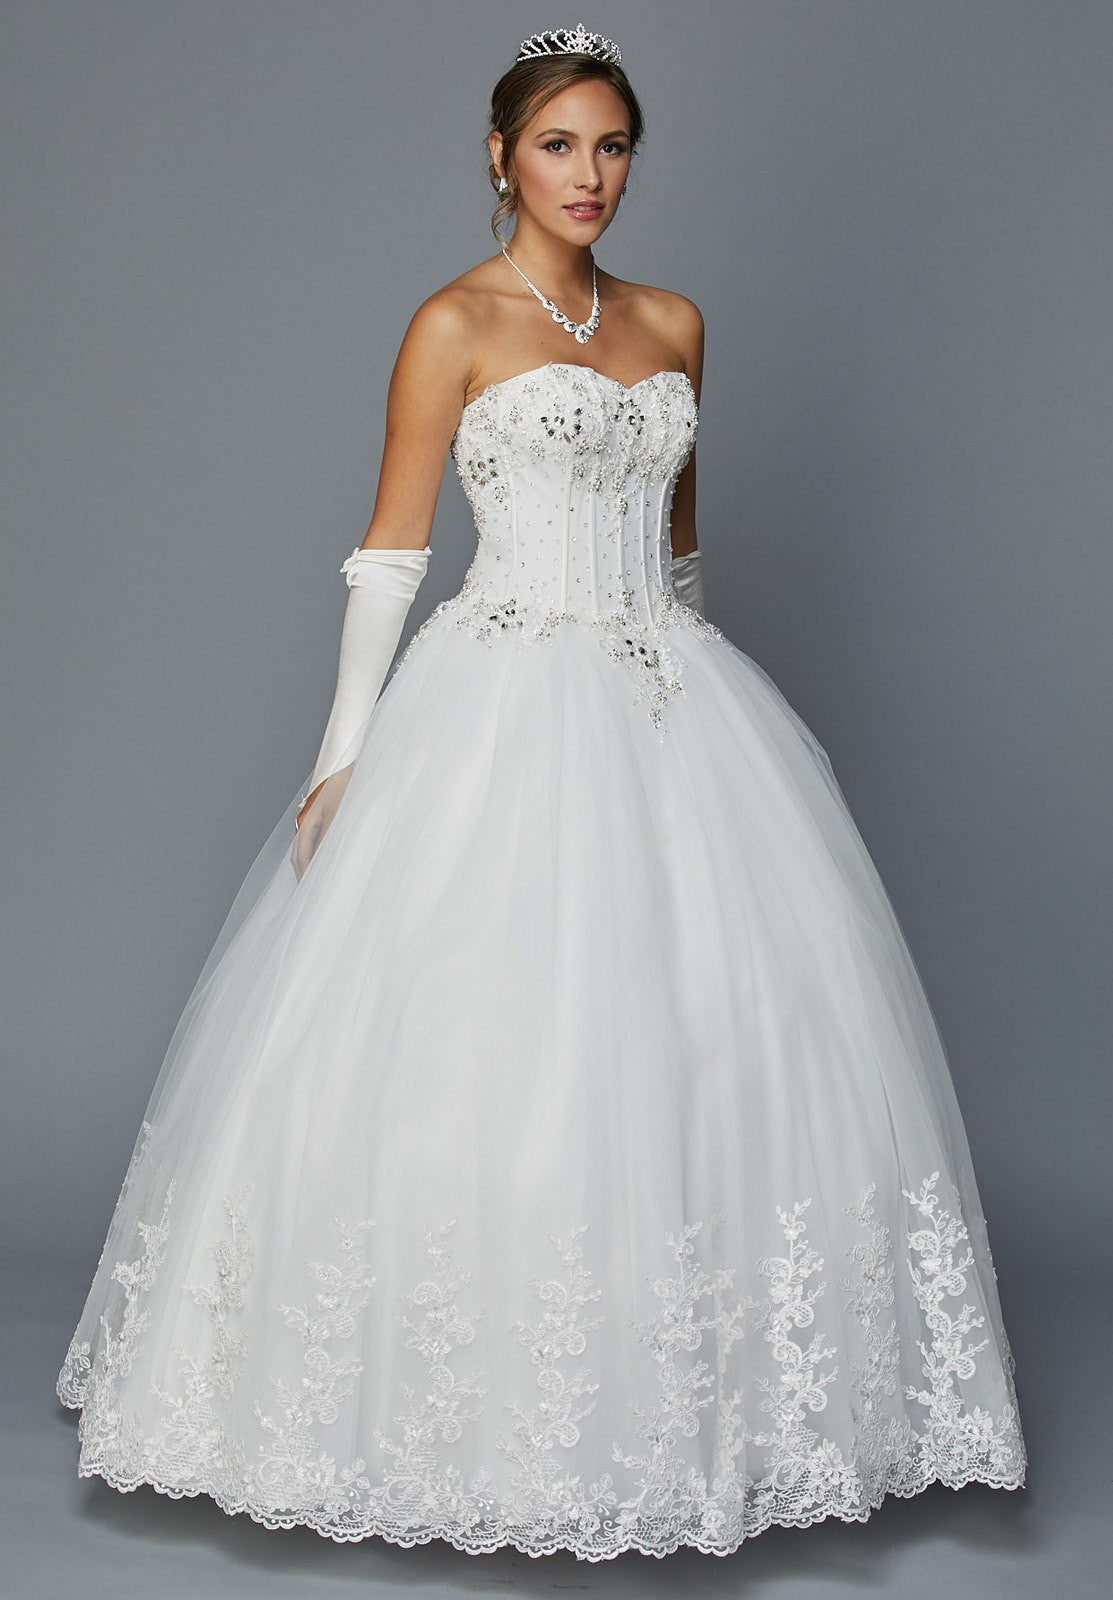 Juliet 352 Jewel Bodice Strapless Ball Gown Wedding Dress White